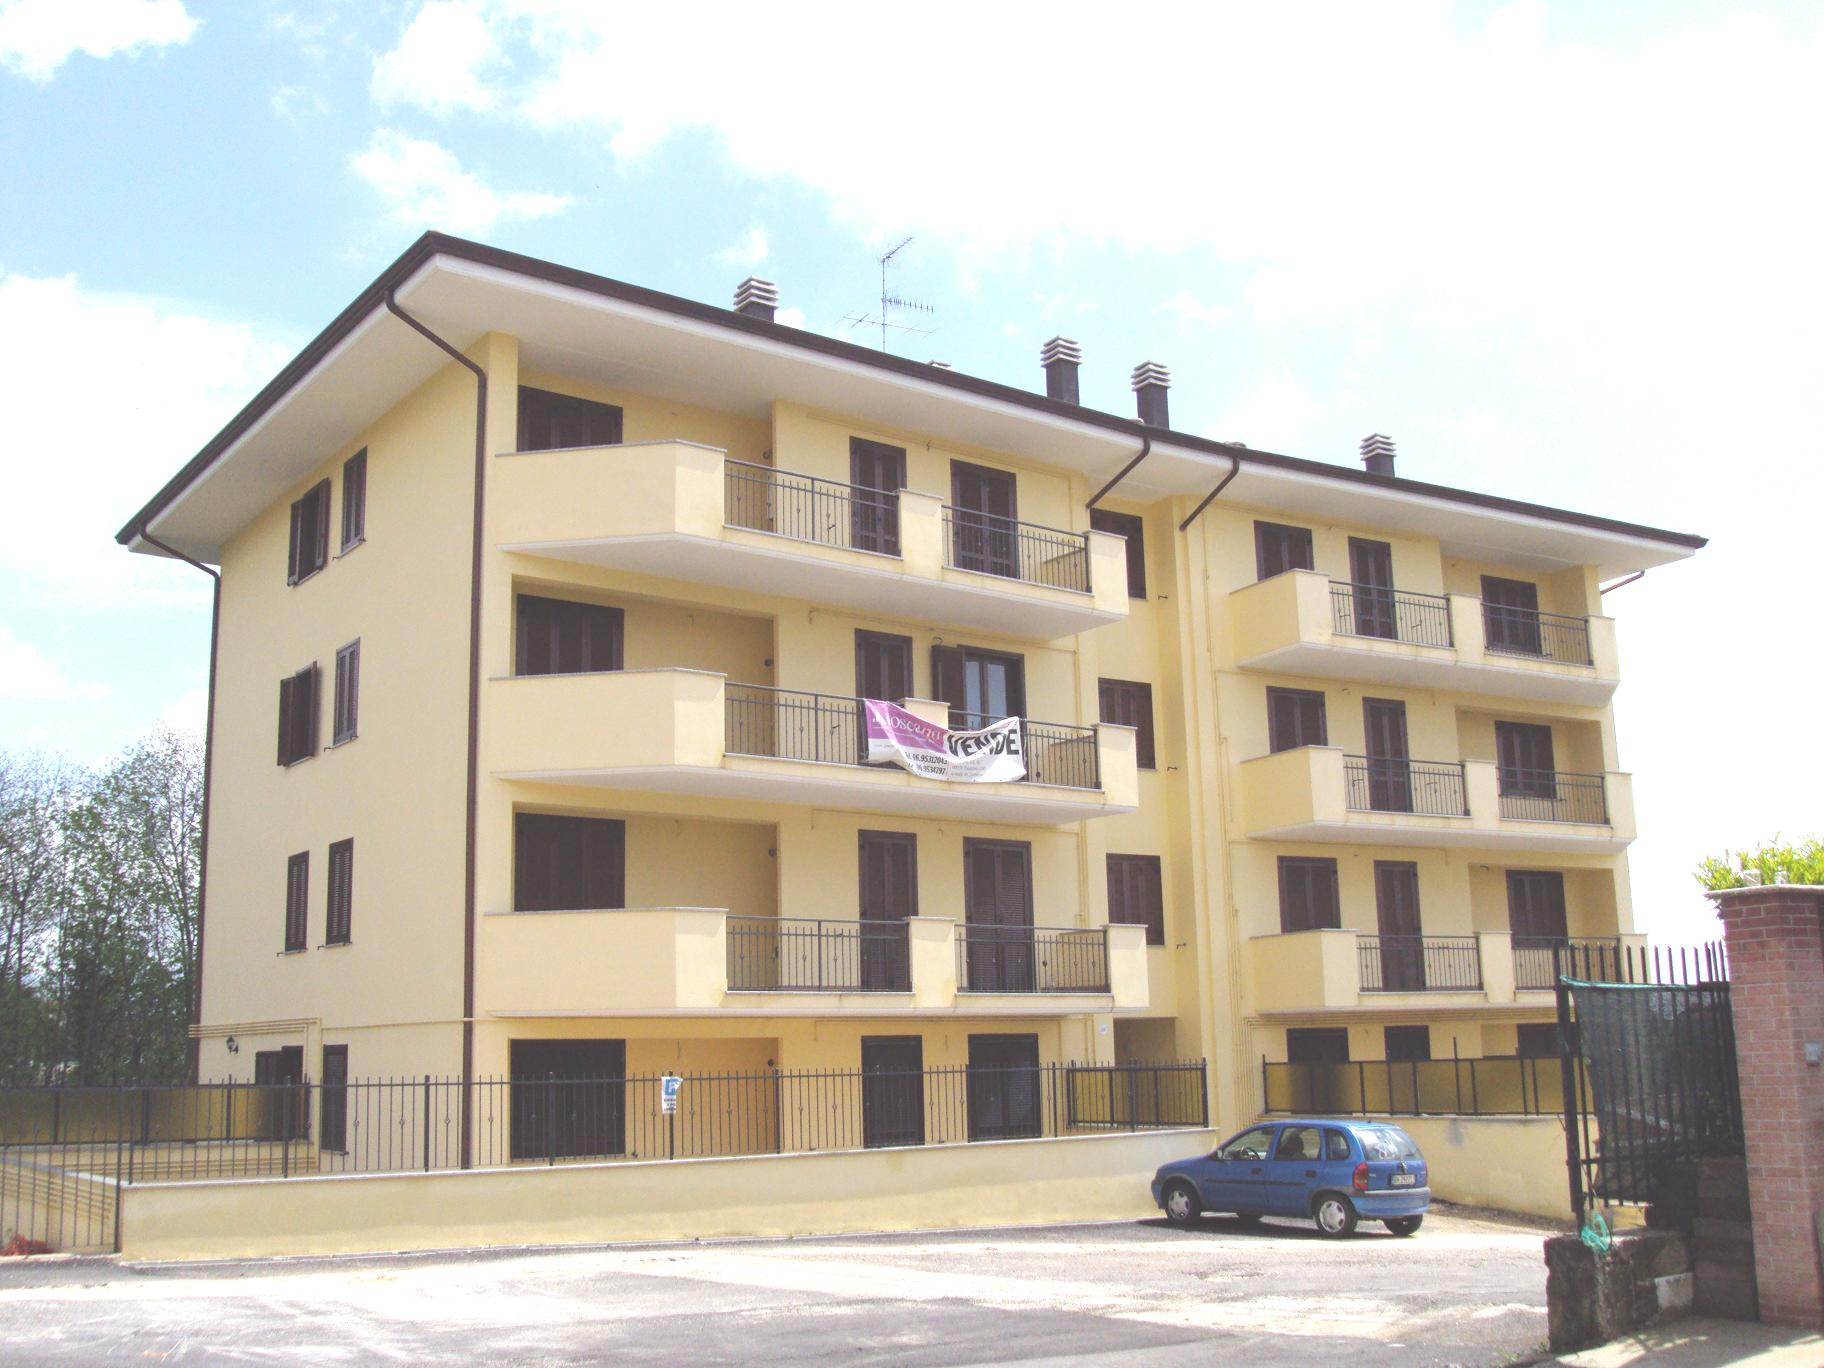 cave rm affitto 450 euro